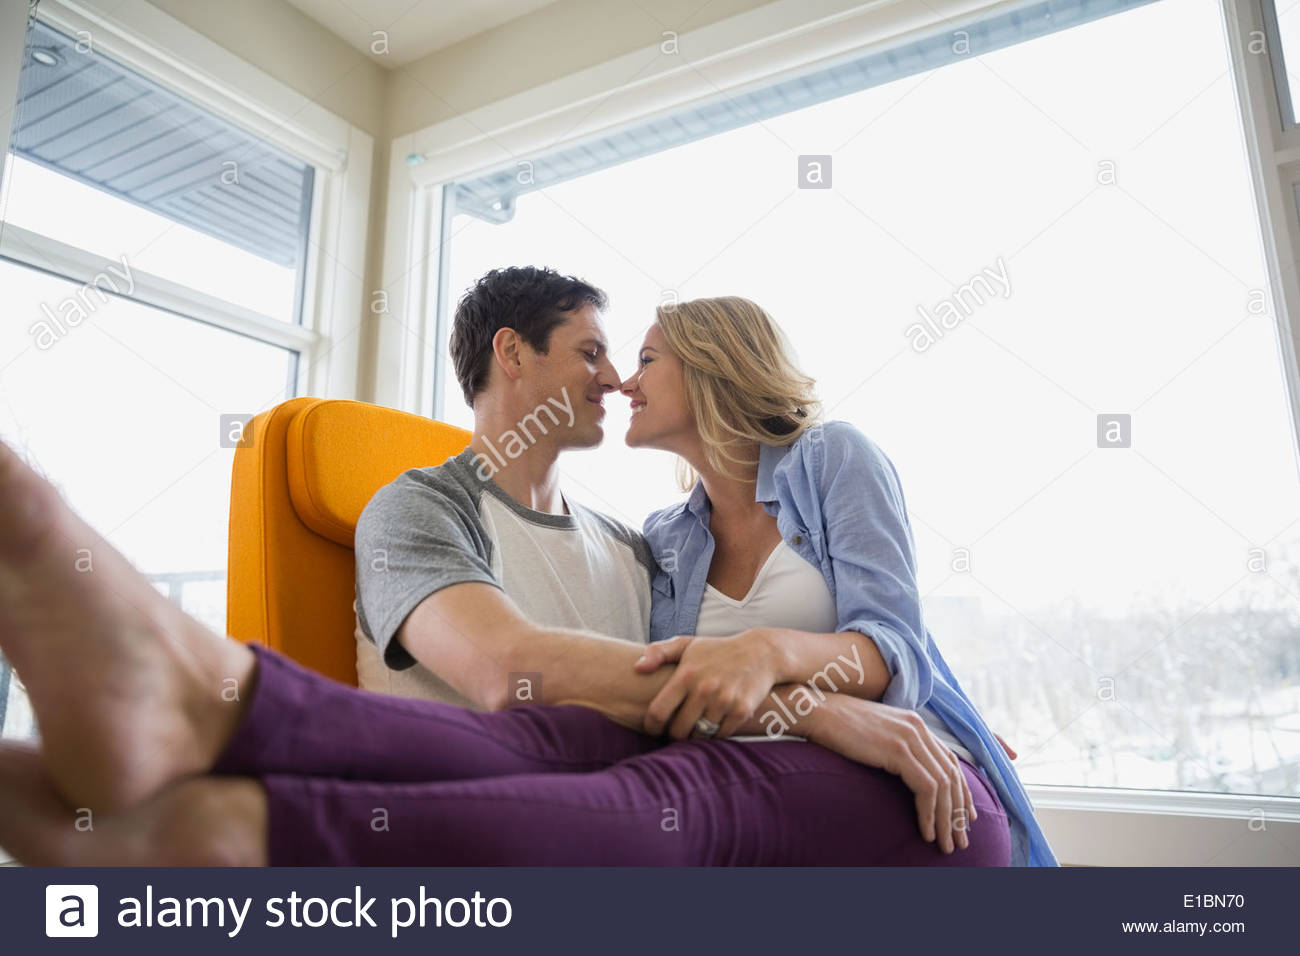 Couple rubbing noses in living room - Stock Image